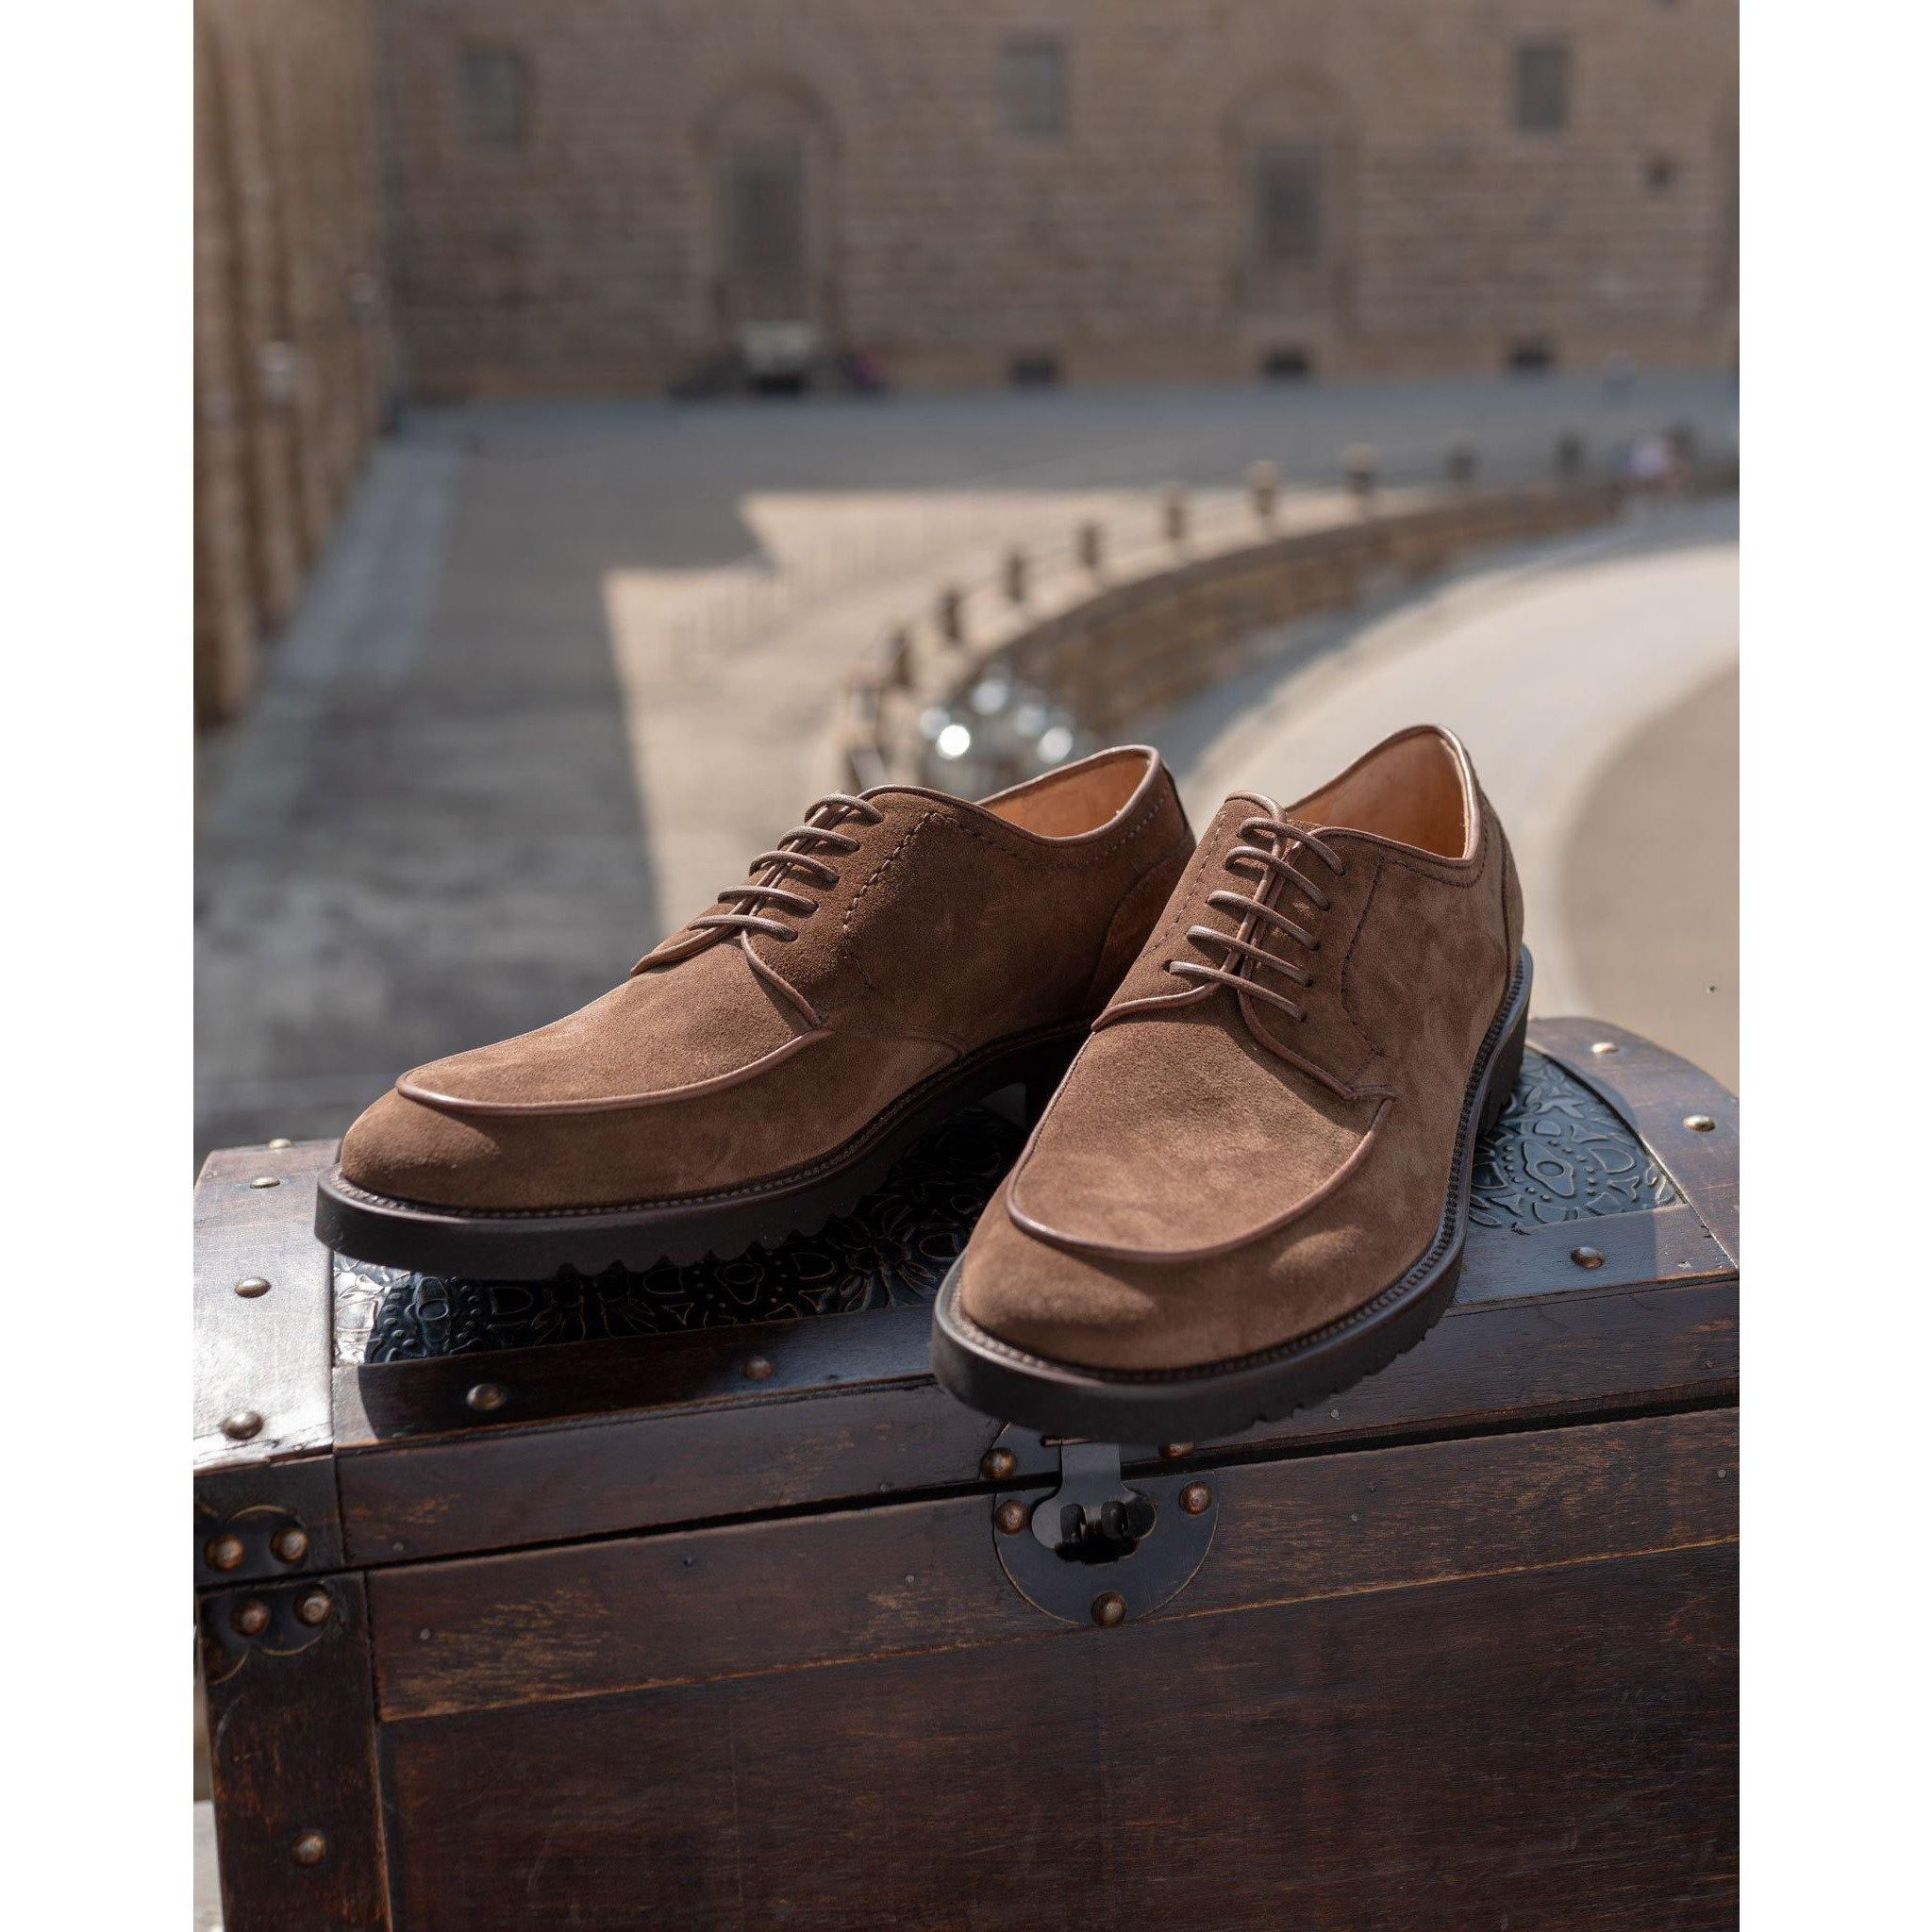 LAN9051 F544 Lace Up Men Shoes - Jennifer Tattanelli Signature Collection